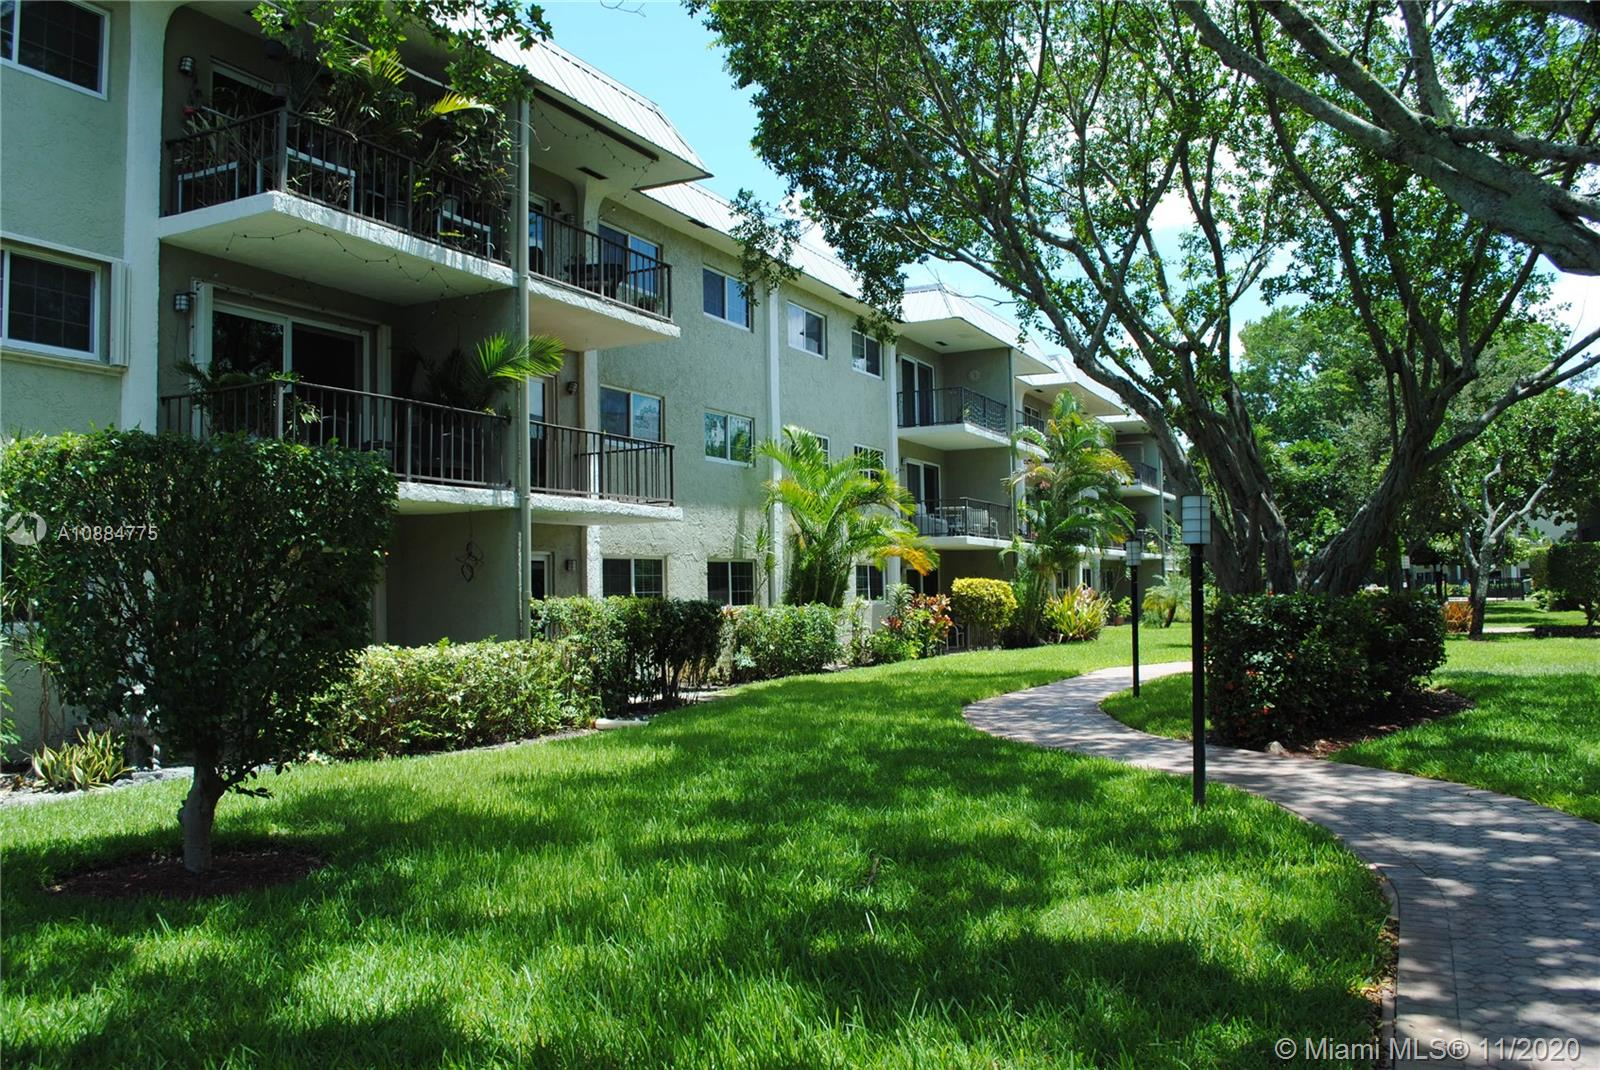 TWO BEDROOM, TWO BATHROOM CONDO IN RIVER MANOR. ESTATE SALE SUBJECT TO COURT APPROVAL. IMPACT WINDOWS AND SLIDING DOORS TO BALCONY. GARDEN & COURTYARD VIEW. TILE THROUGHOUT. WALK IN CLOSETS. COMMUNITY LAUNDRY ROOM. SOLD WITH CONTENTS. WELL MAINTAINED COMMUNITY WITH NICELY MANICURED LUSH LANDSCAPING, CLUBHOUSE, HEATED POOL & WATERFRONT BBQ AREA. 1 ASSIGNED PARKING WITH PLENTY OF GUEST PARKING. SEPARATE STORAGE AREA. NO DOGS. 2 CATS OK. NO LEASING FIRST YEAR OF OWNERSHIP. GREAT LOCATION NEAR I-95 & WITHIN WALKING DISTANCE OF WILTON DRIVE, PUBLIX, STARBUCKS AND DINING. TEXT LISTING AGENT. PLEASE VIEW PROPERTY BEFORE SUBMITTING OFFER. ALL OFFERS MUST BE COMPLETE TO BE CONSIDERED. CONTRACT TO BE APPROVED BY SELLERS ATTORNEY. SEE ATTACHMENTS & BROKER'S REMARKS. SOME PICS ARE VIRTUALLY STAGED.